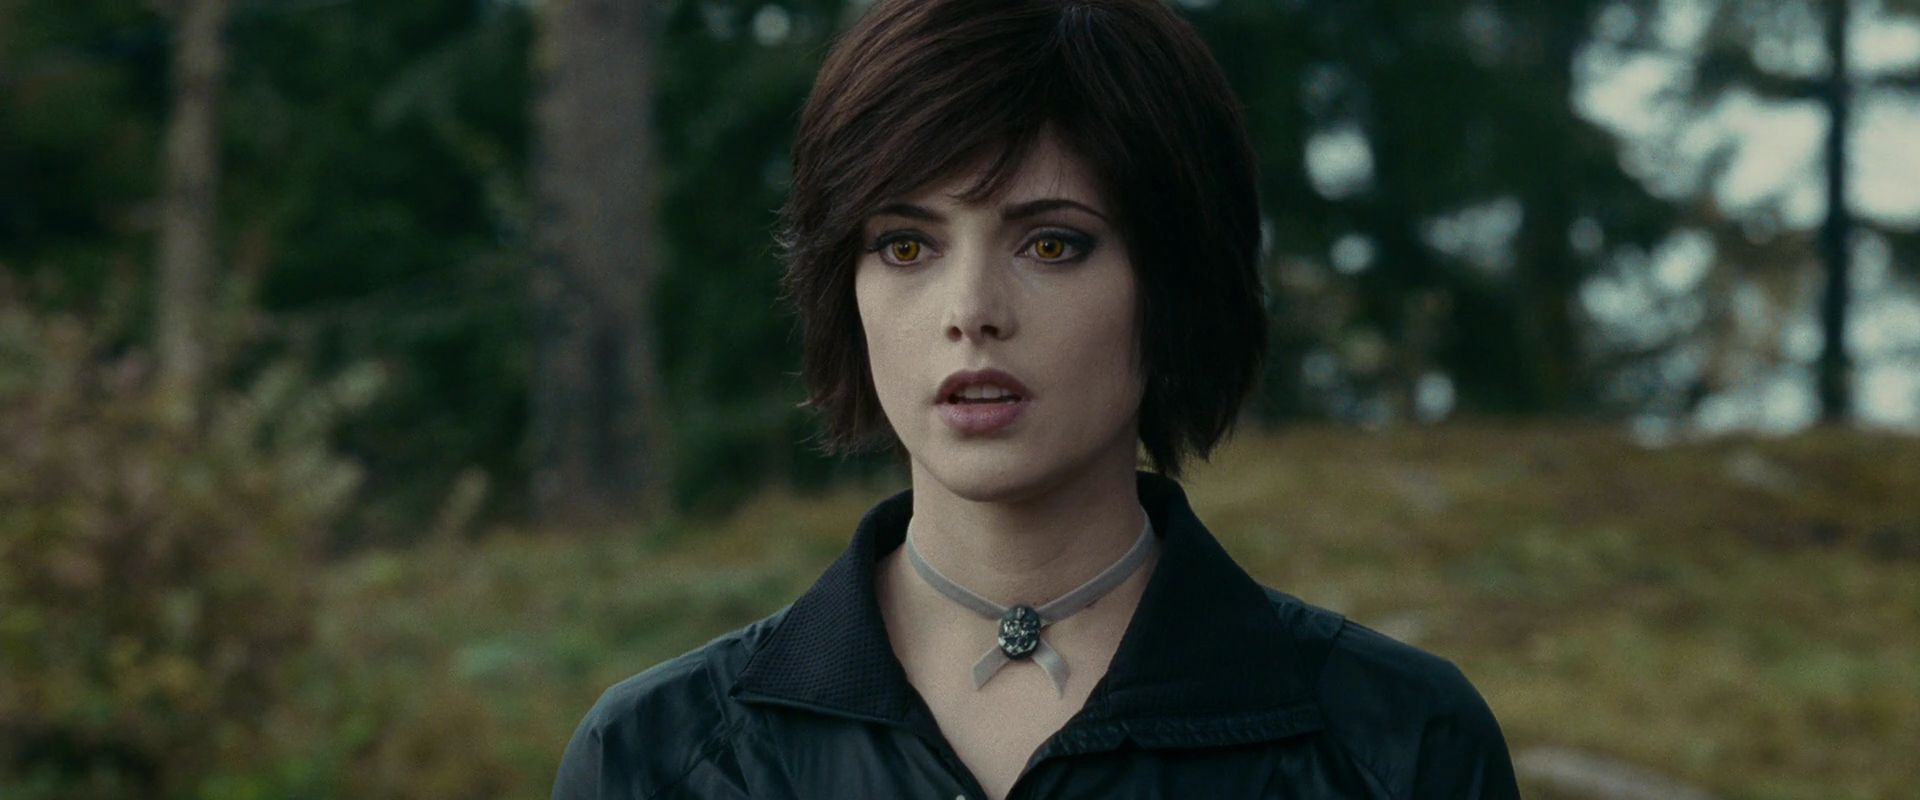 Alice Cullen Hair in Eclipse http://www.tattoodonkey.com/iphonegs-tattoos/2/